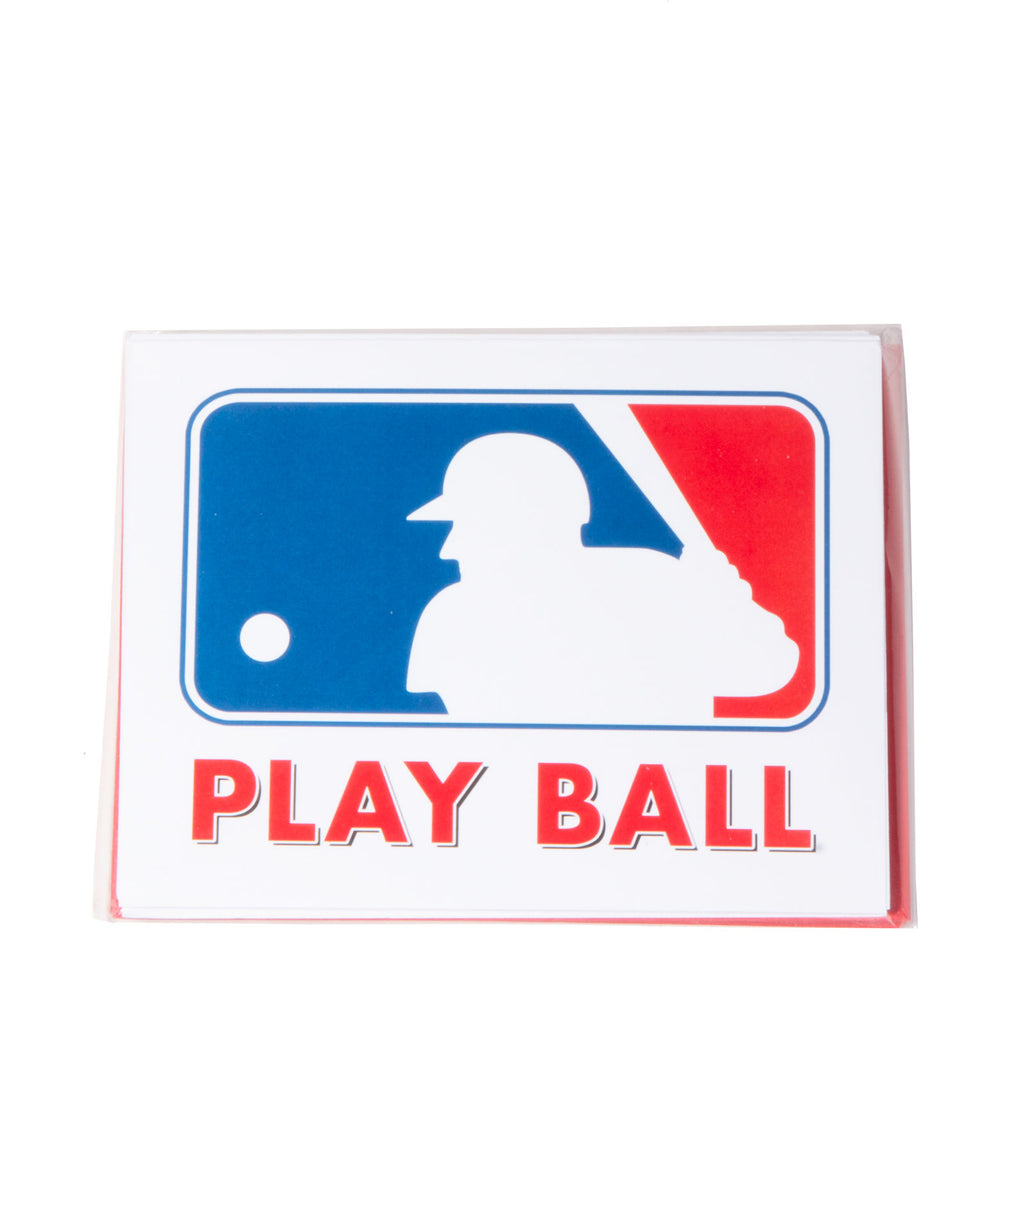 Staci-Nary Pack of 10 Cards Play Ball